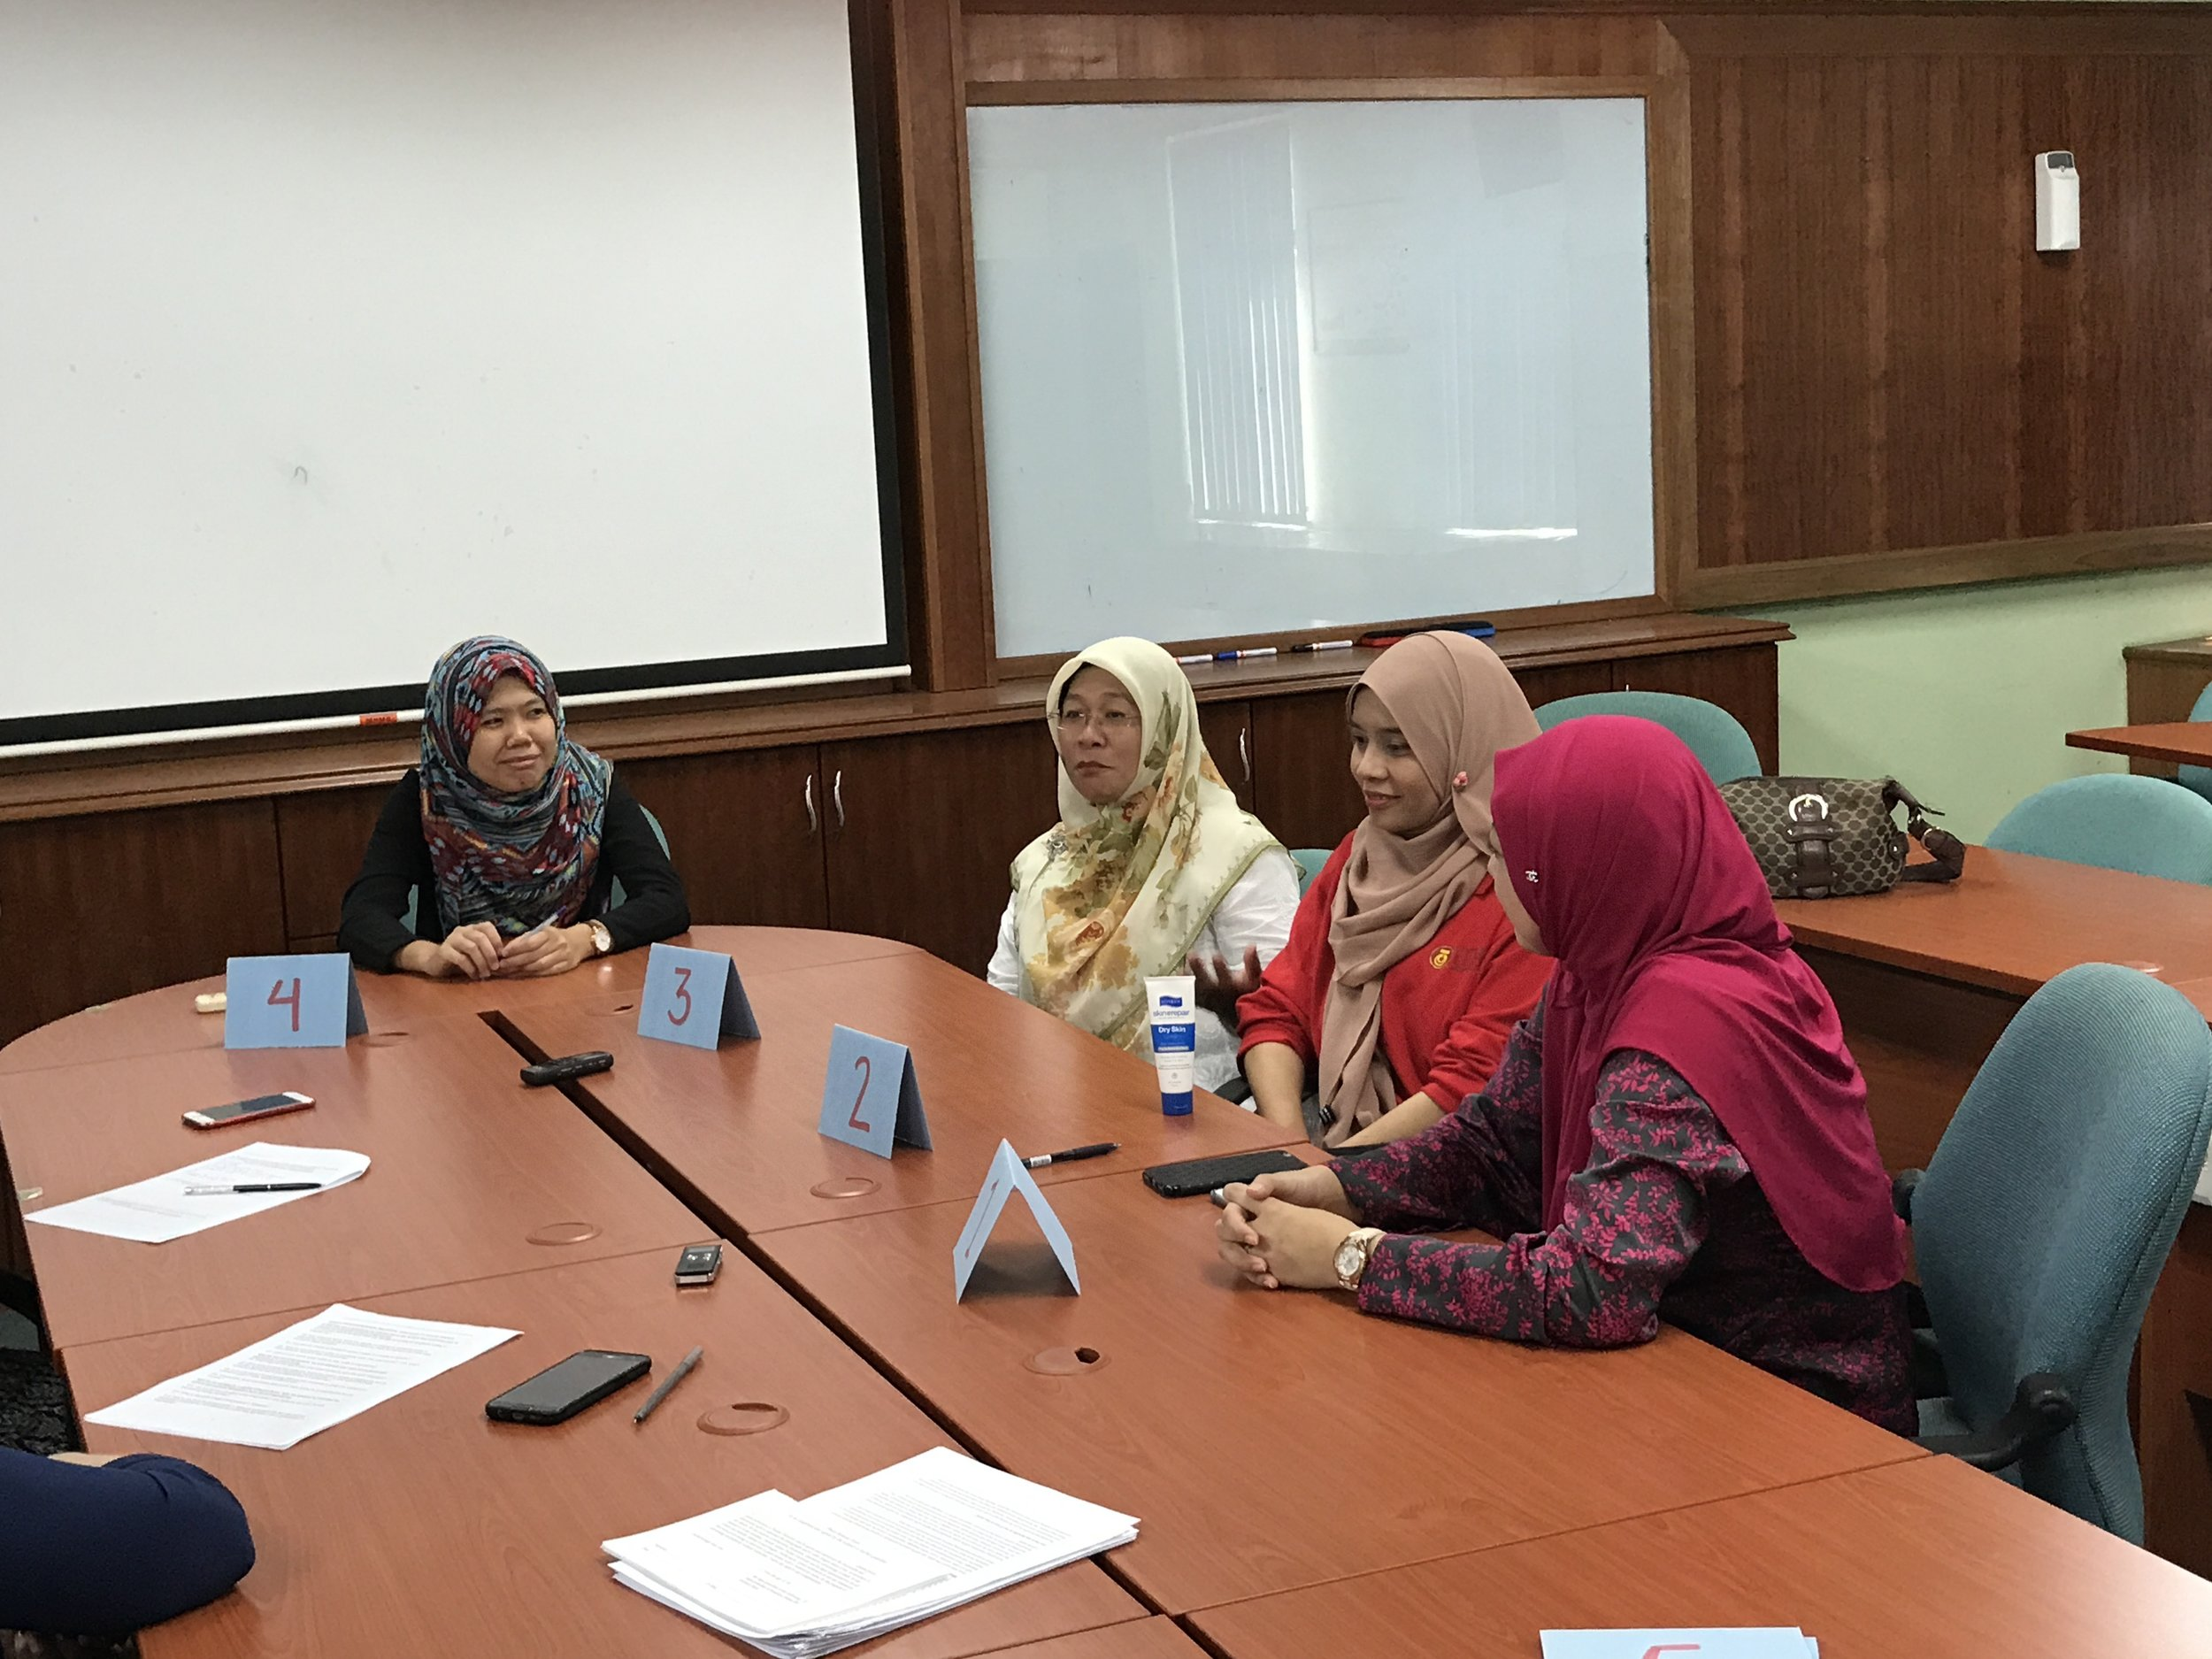 Conducting a focus group interview with mechanical engineering faculty members at UTM in Johor Bahru.